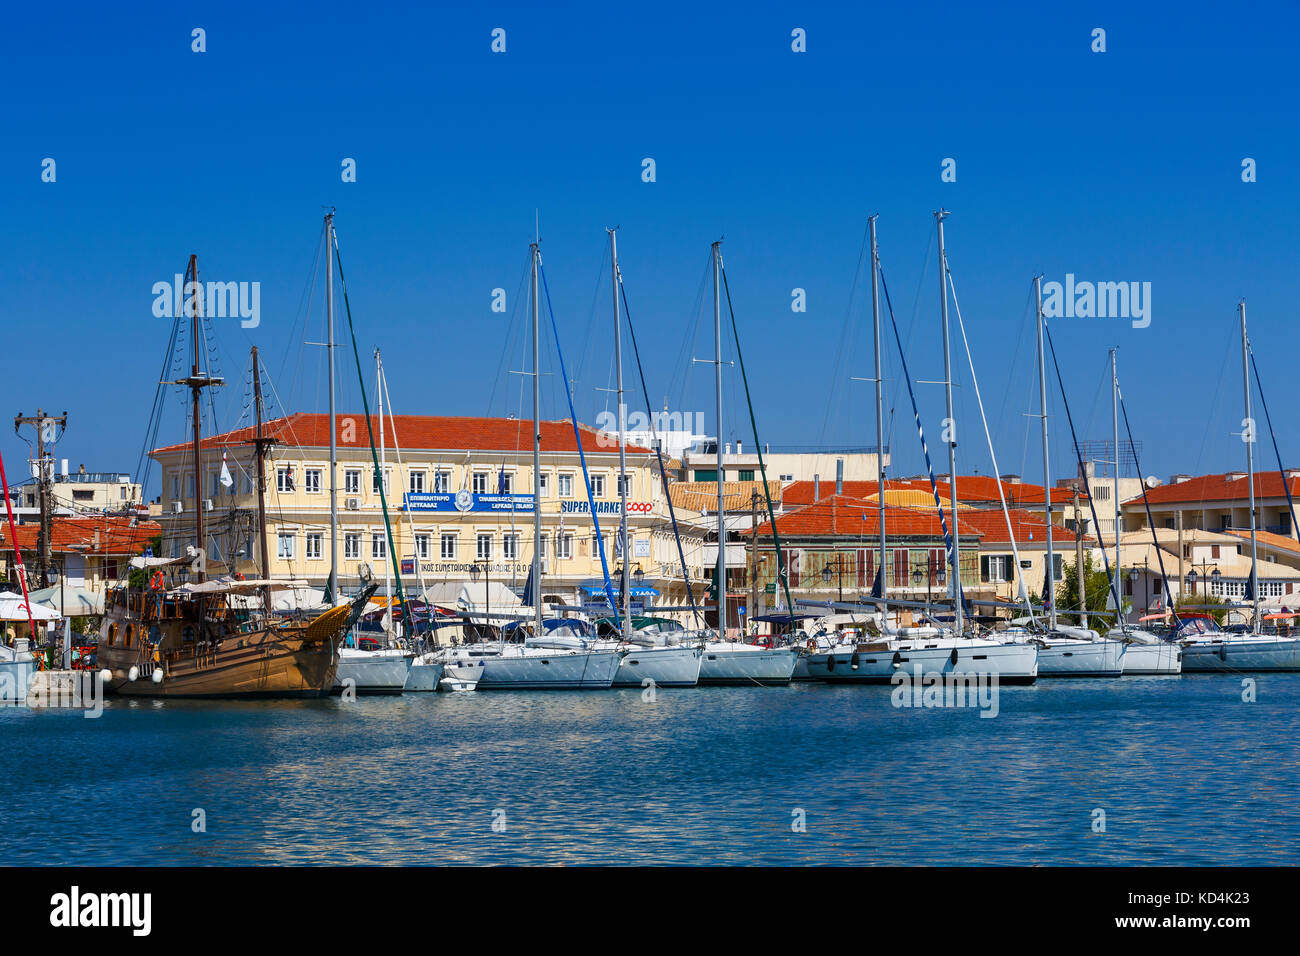 Sail boats in the harbour of Lefkada town, Greece. - Stock Image